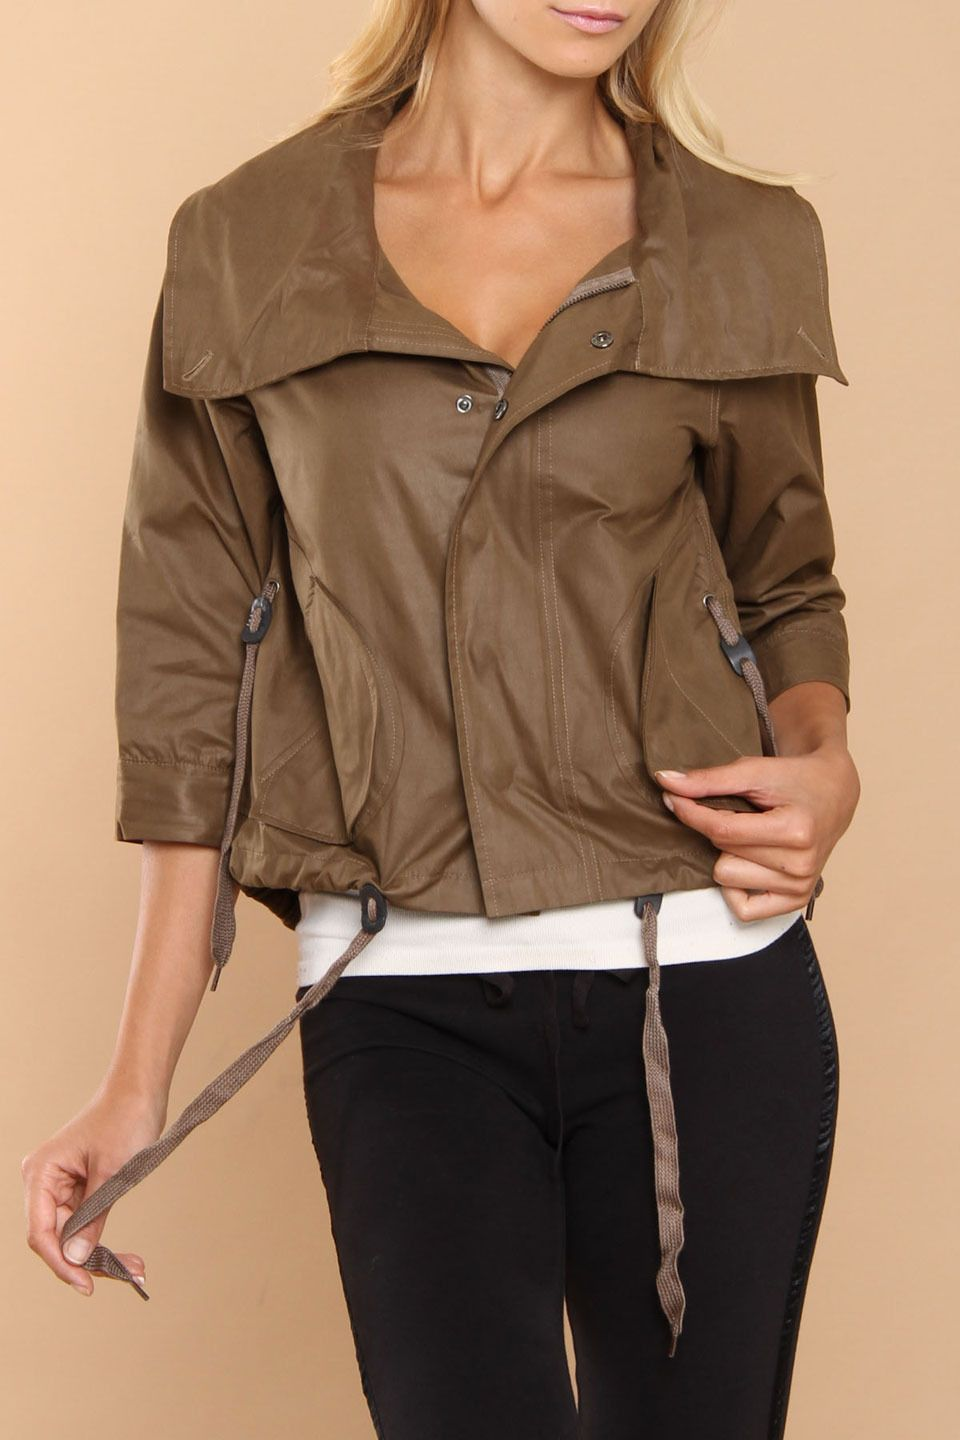 Heidi Klum HKNB Conradine Laminated Jacket In Olive -in brown a definite yes